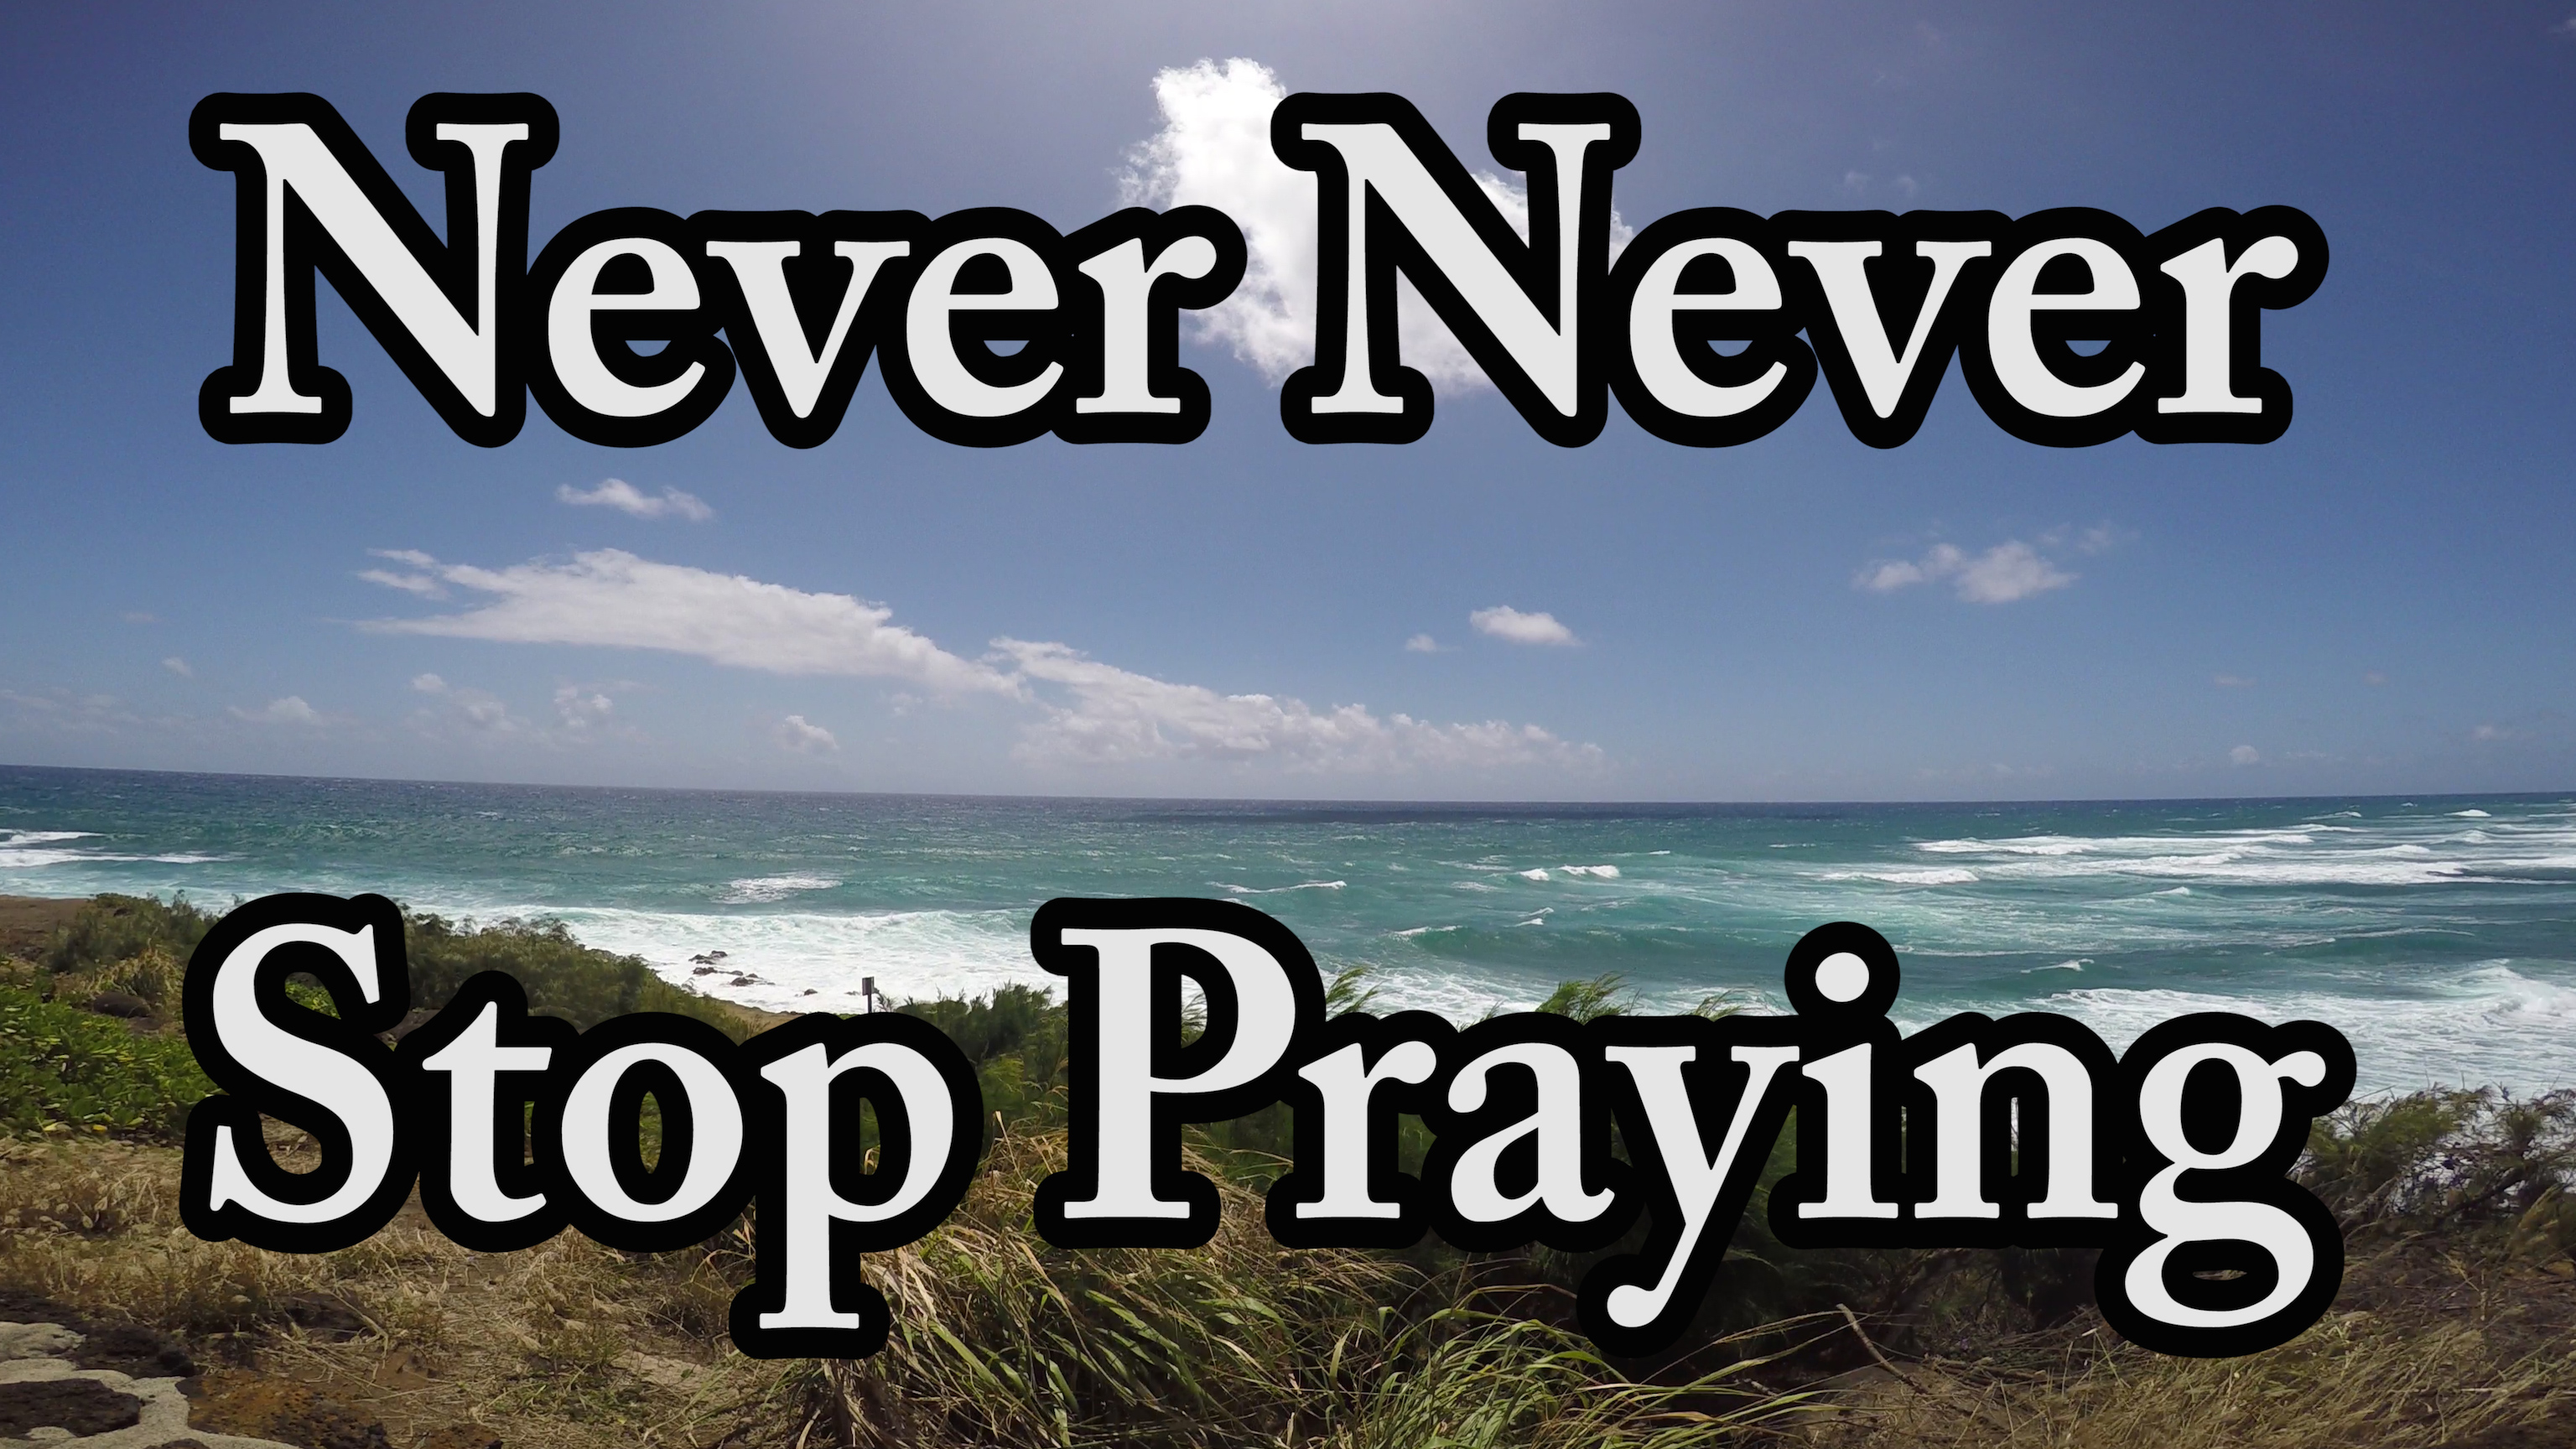 Never Never Stop Praying